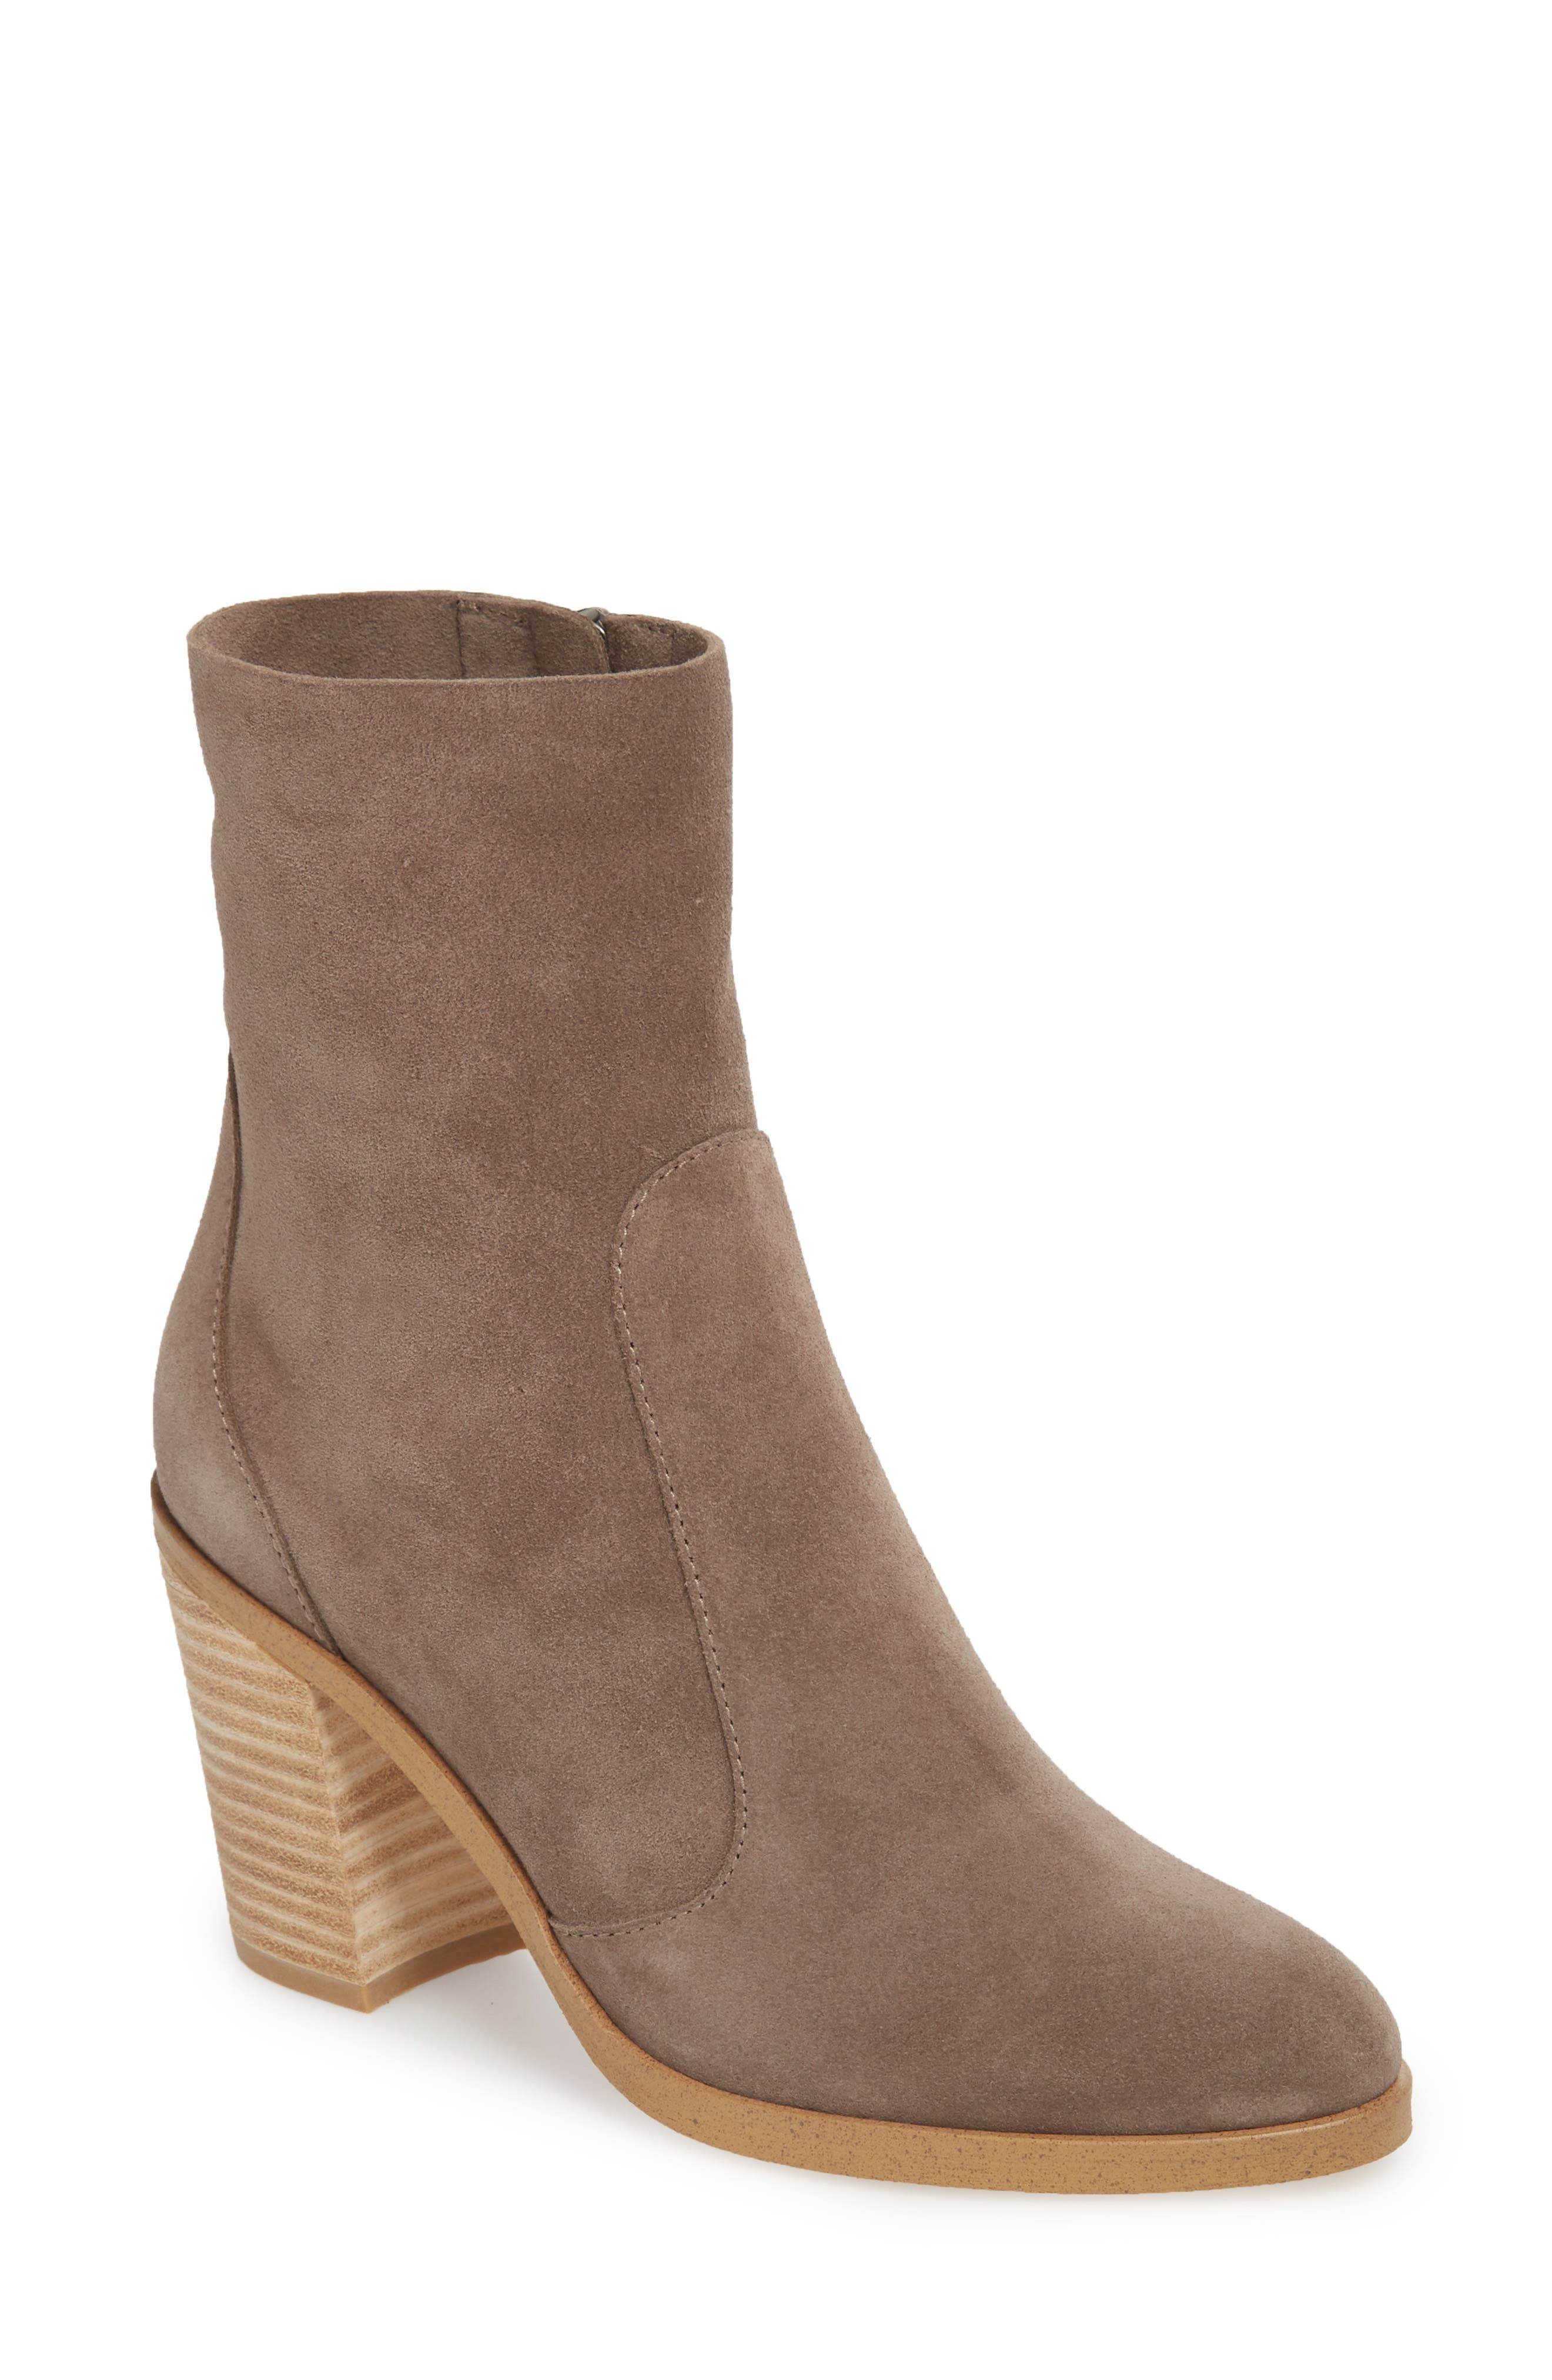 Roselyn II Almond Toe Bootie,                         Main,                         color, LIGHT CHARCOAL SUEDE